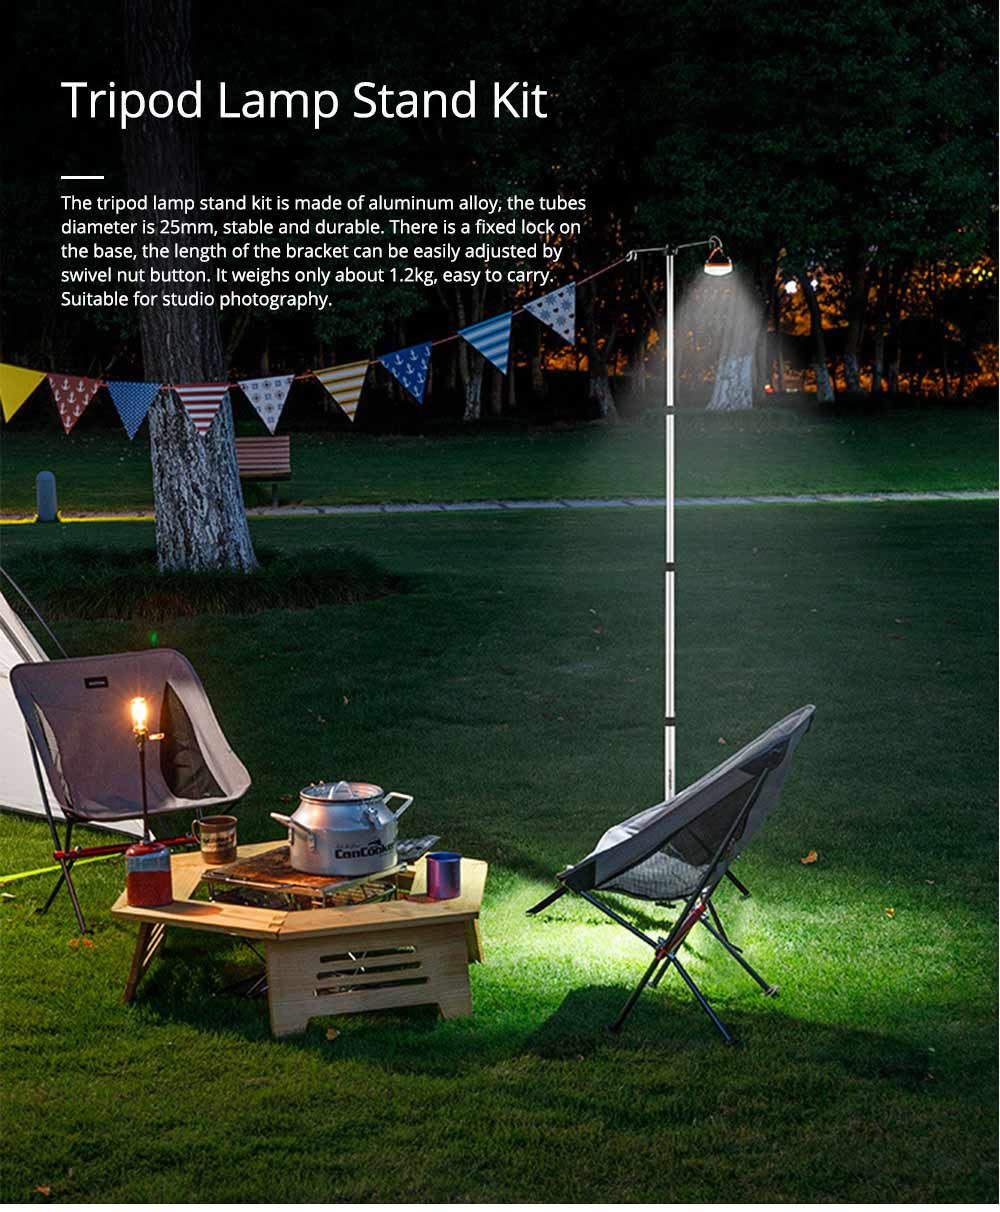 Lamp Holder Tripod Stand Kit Aluminum Alloy Retractable Light Stand Adjustable Height 0.75m to 1.9 Meters Lighting Bracket for Outdoor Camping 0